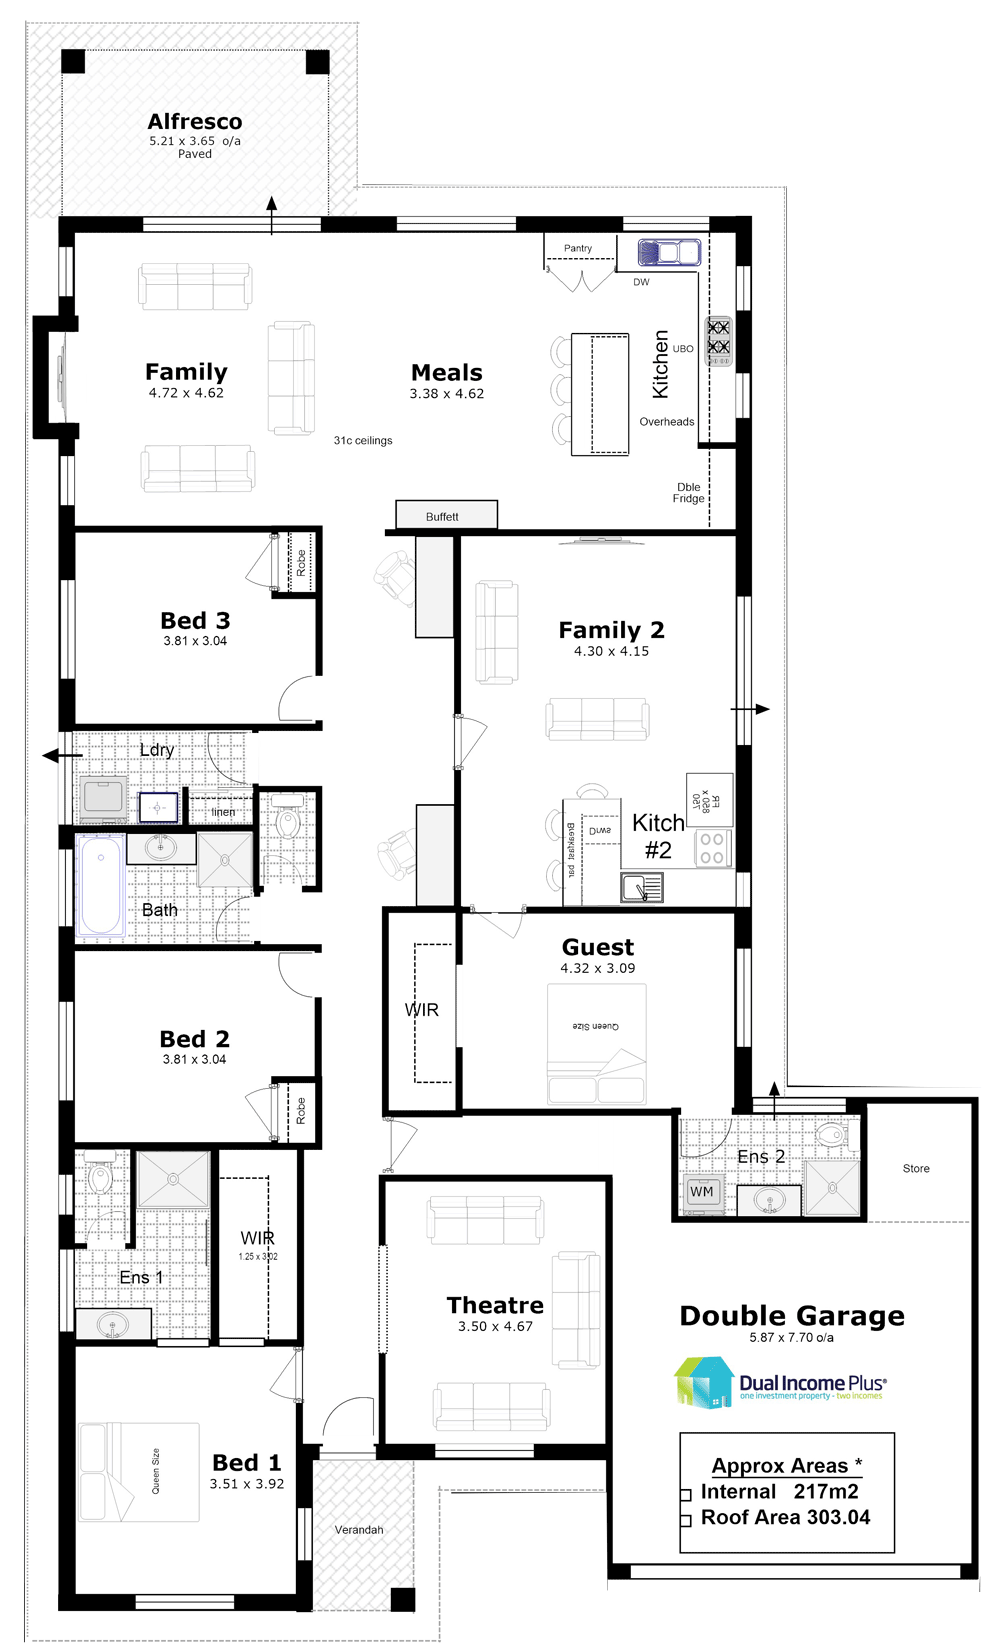 Designs for Multi generational home plans